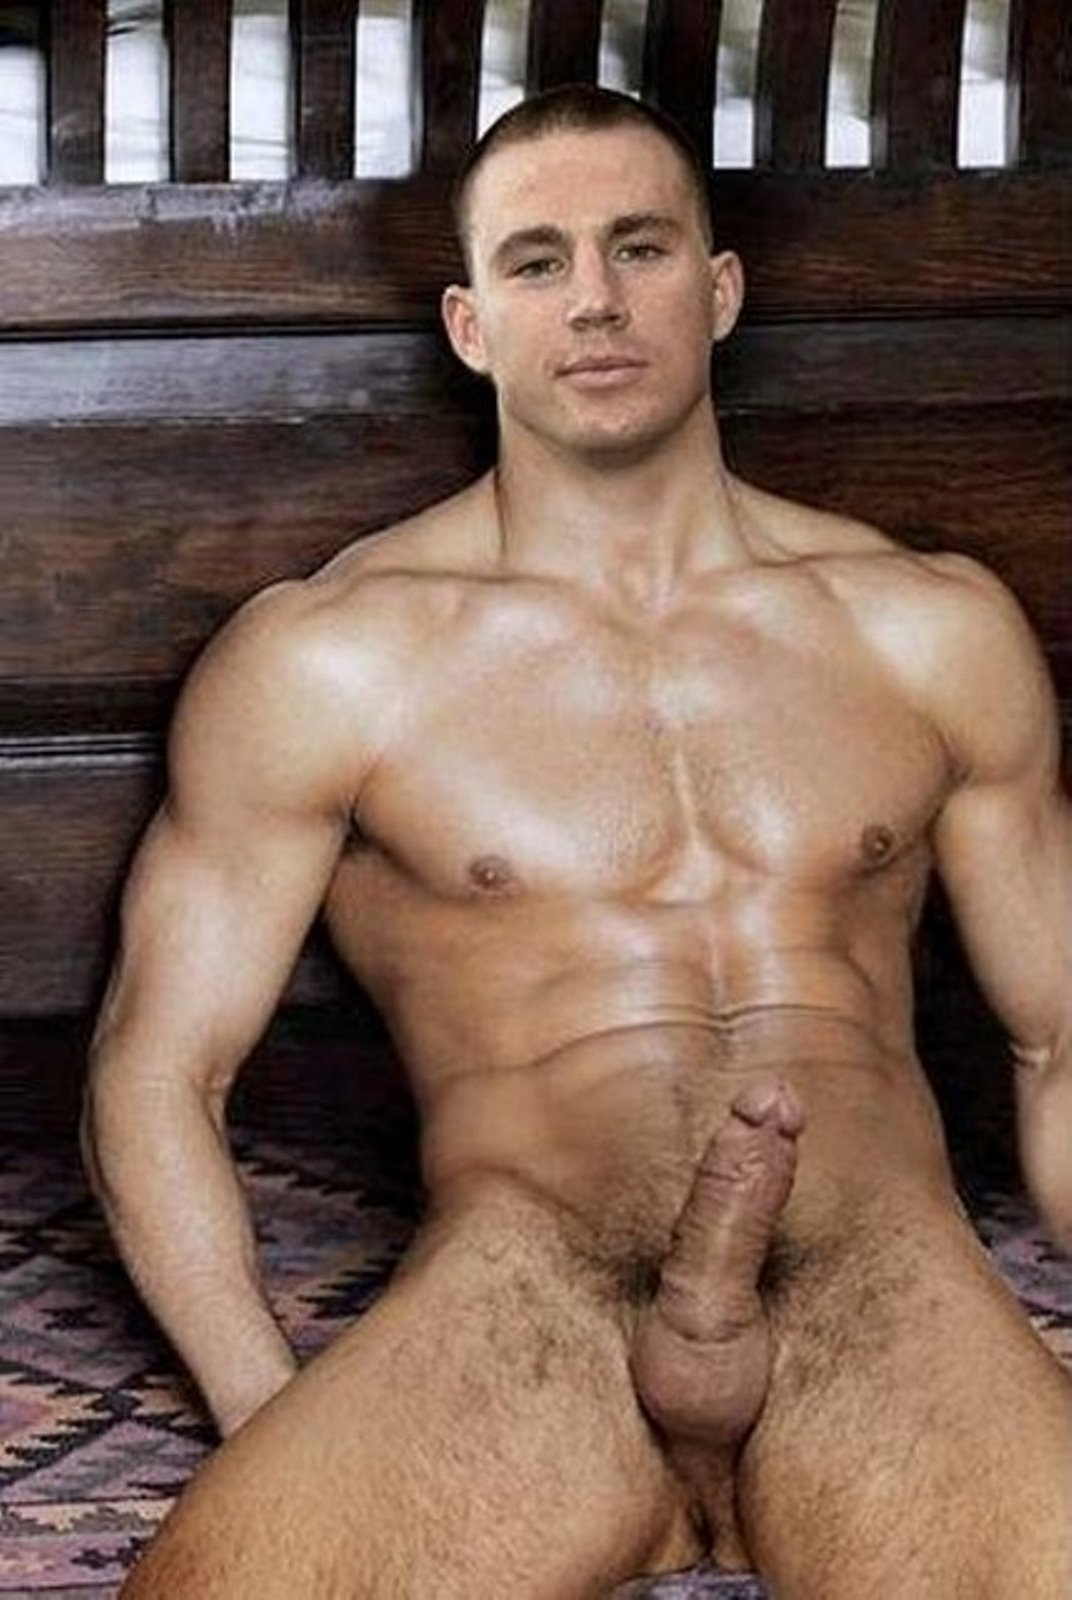 Channing Tatum Comes Out as Gay - Snopescom